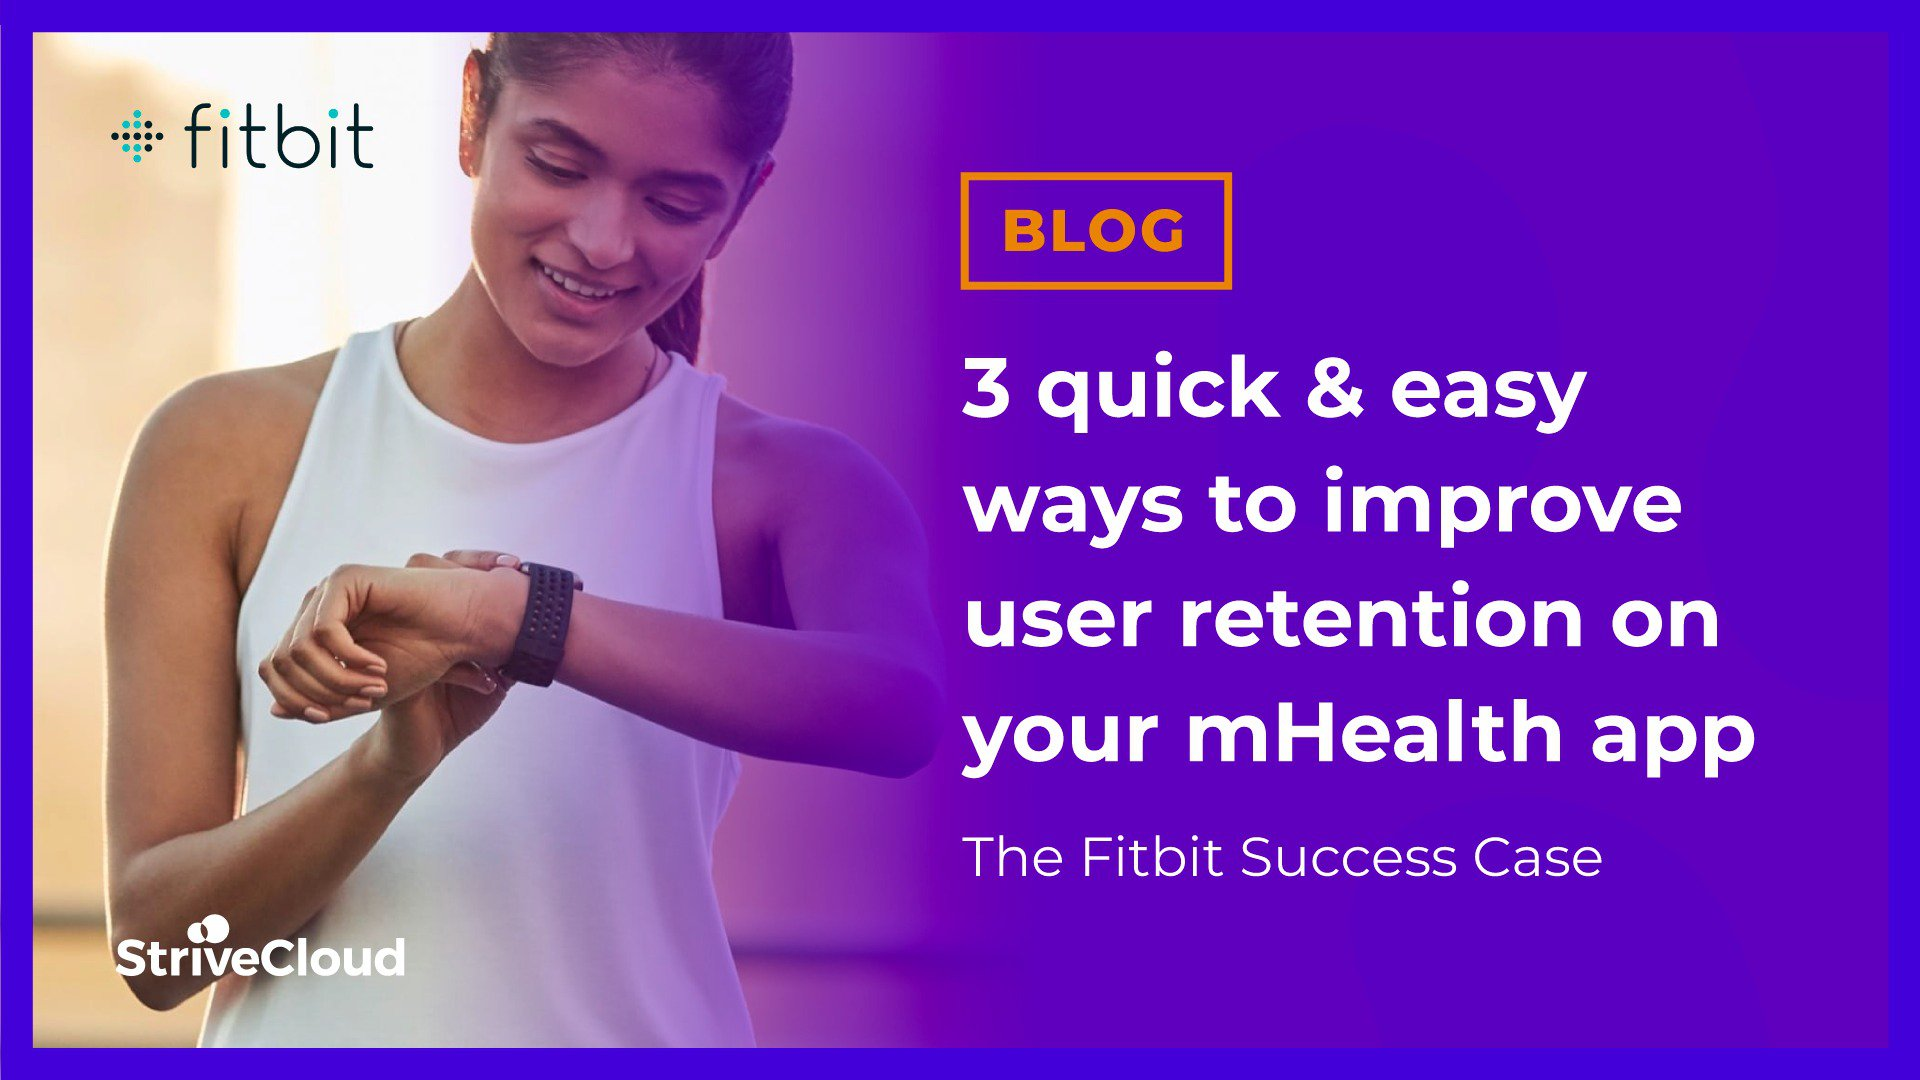 3 quick & easy ways to improve user retention on your mHealth app